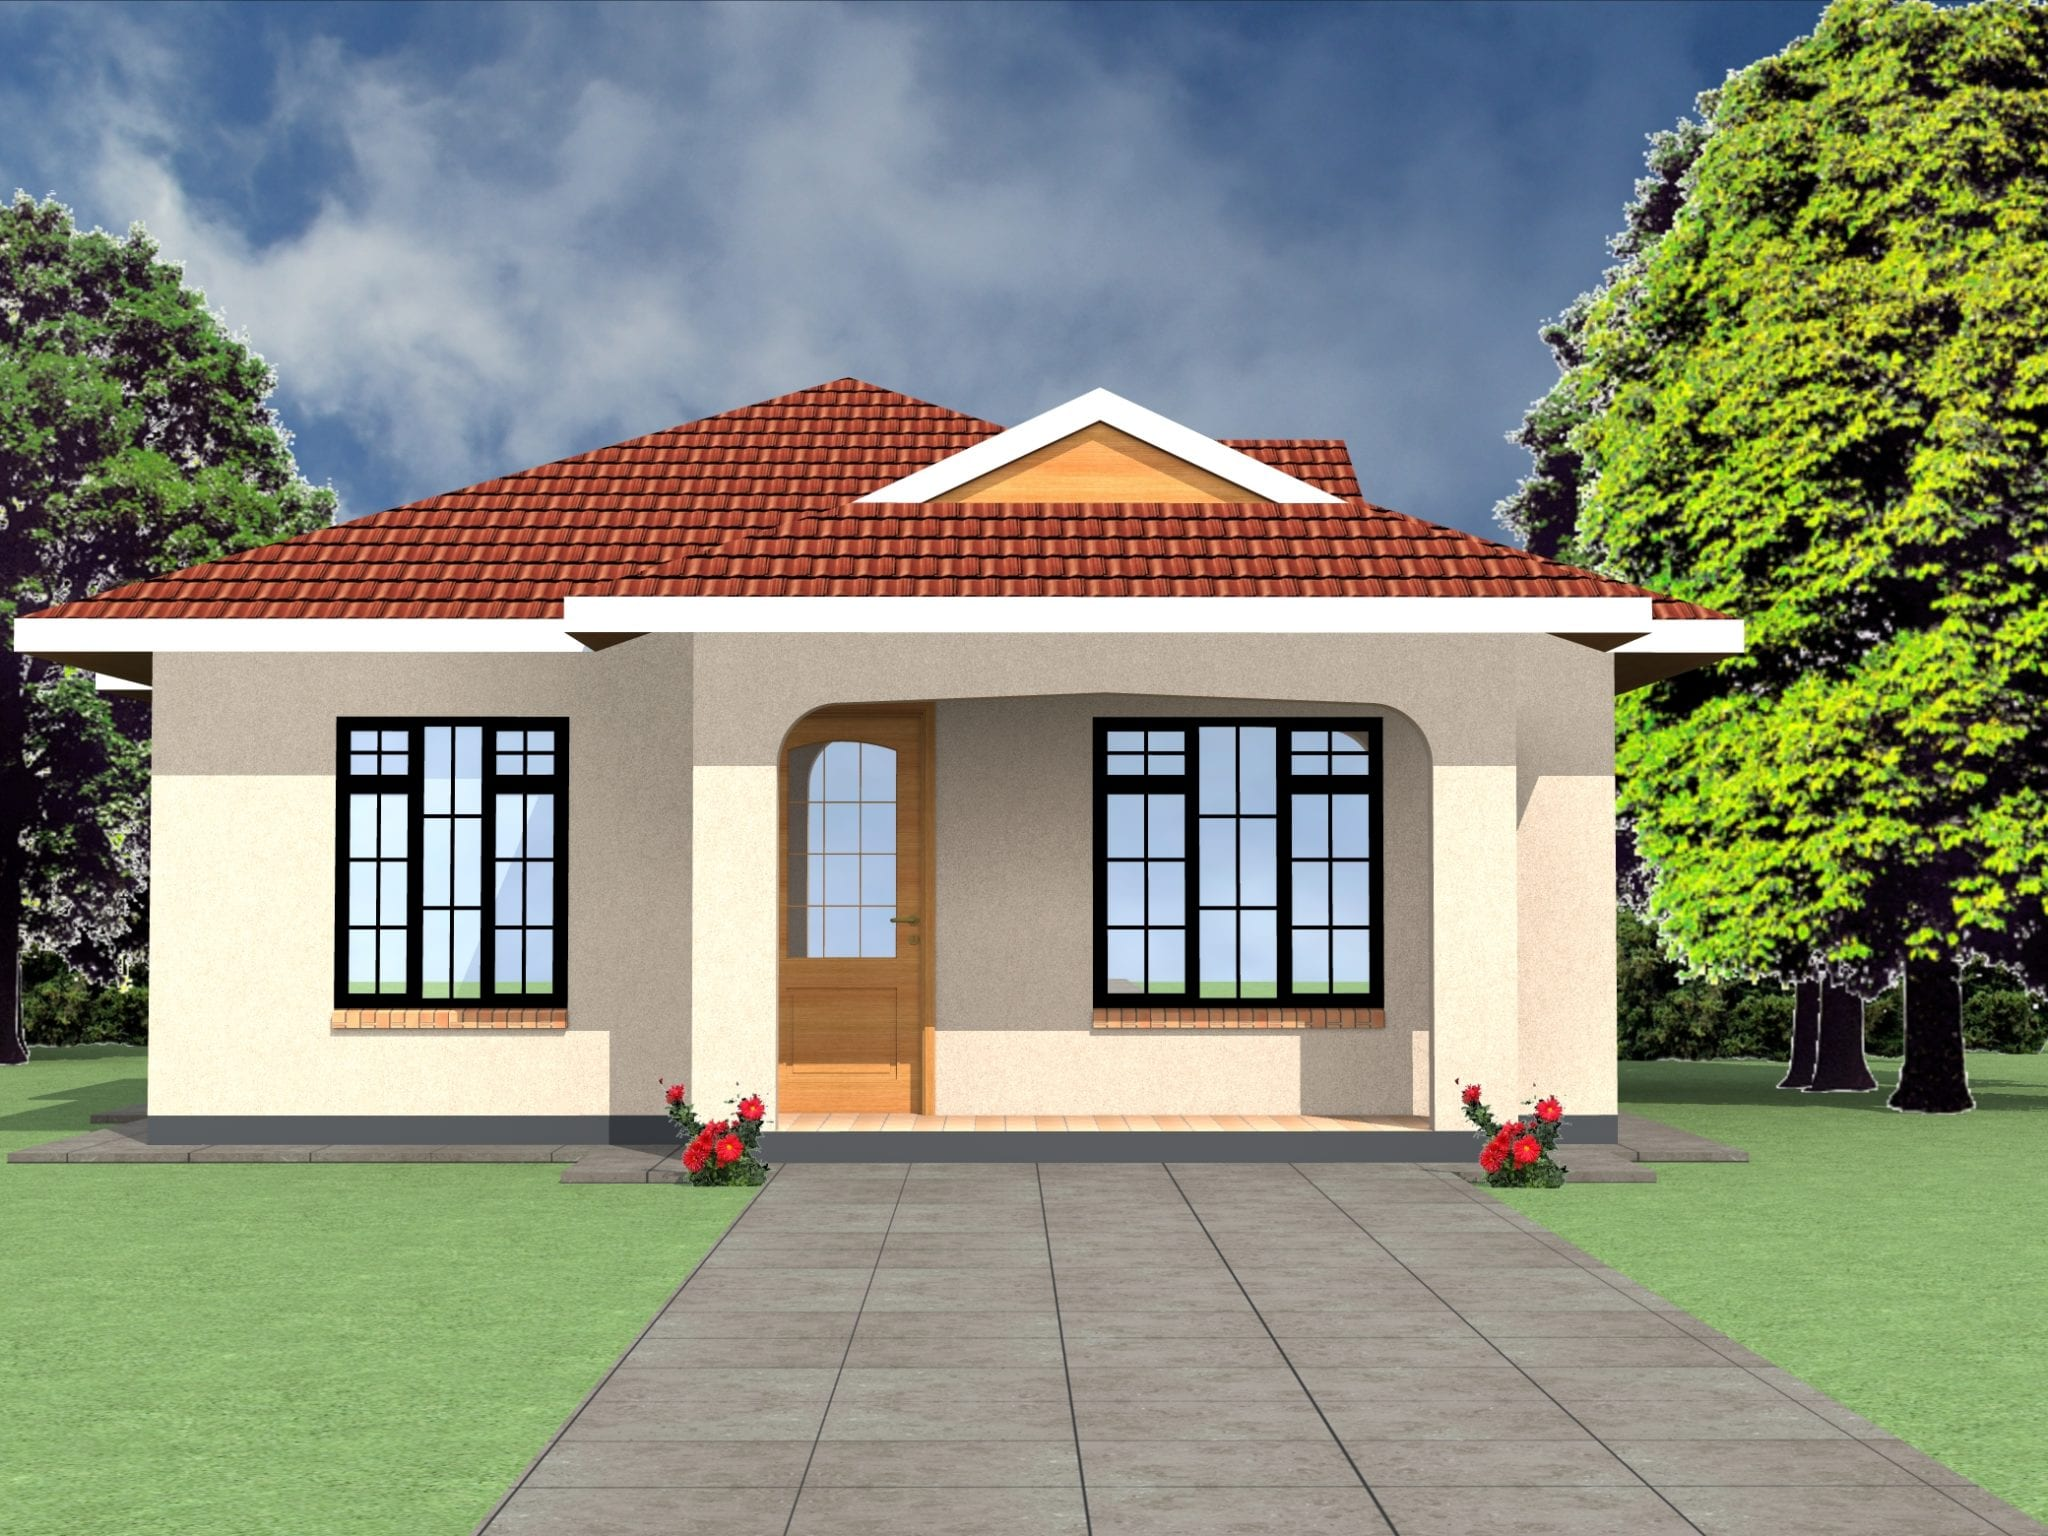 2 Bedroom House Plans Open Floor Plan | HPD Consult